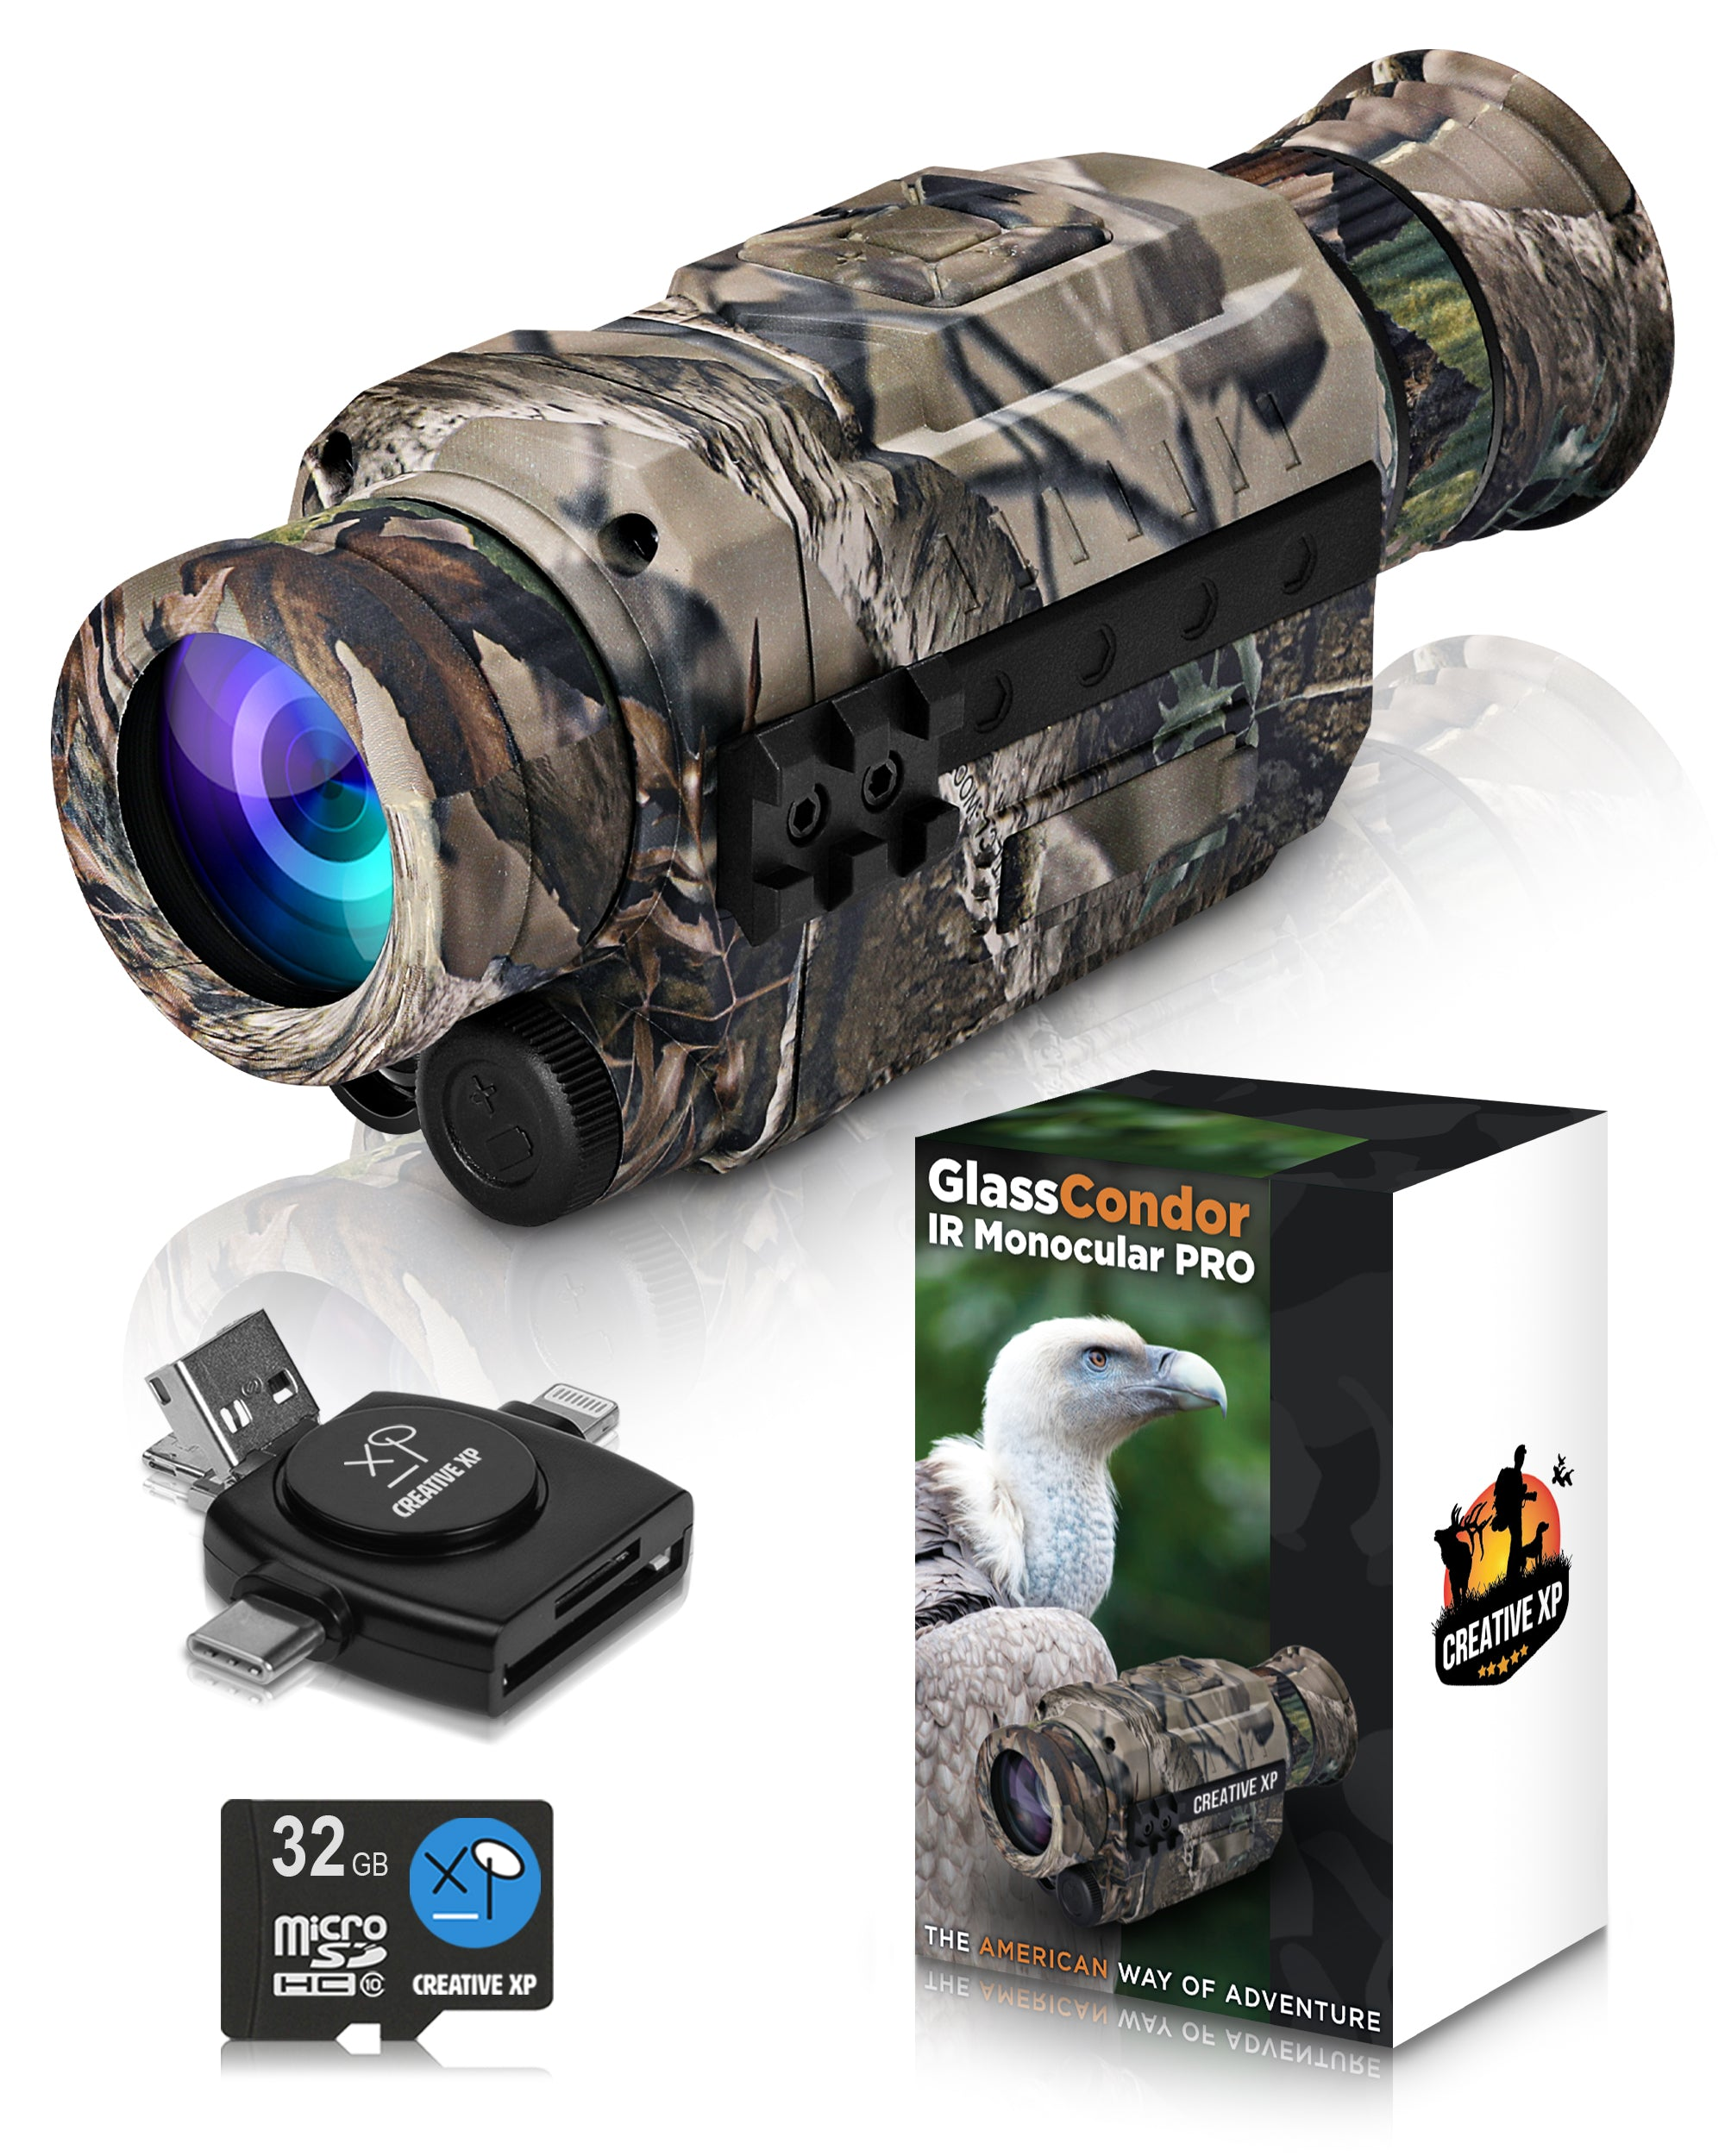 GLASSCONDOR - IR Night Vision Monocular PRO - Camo